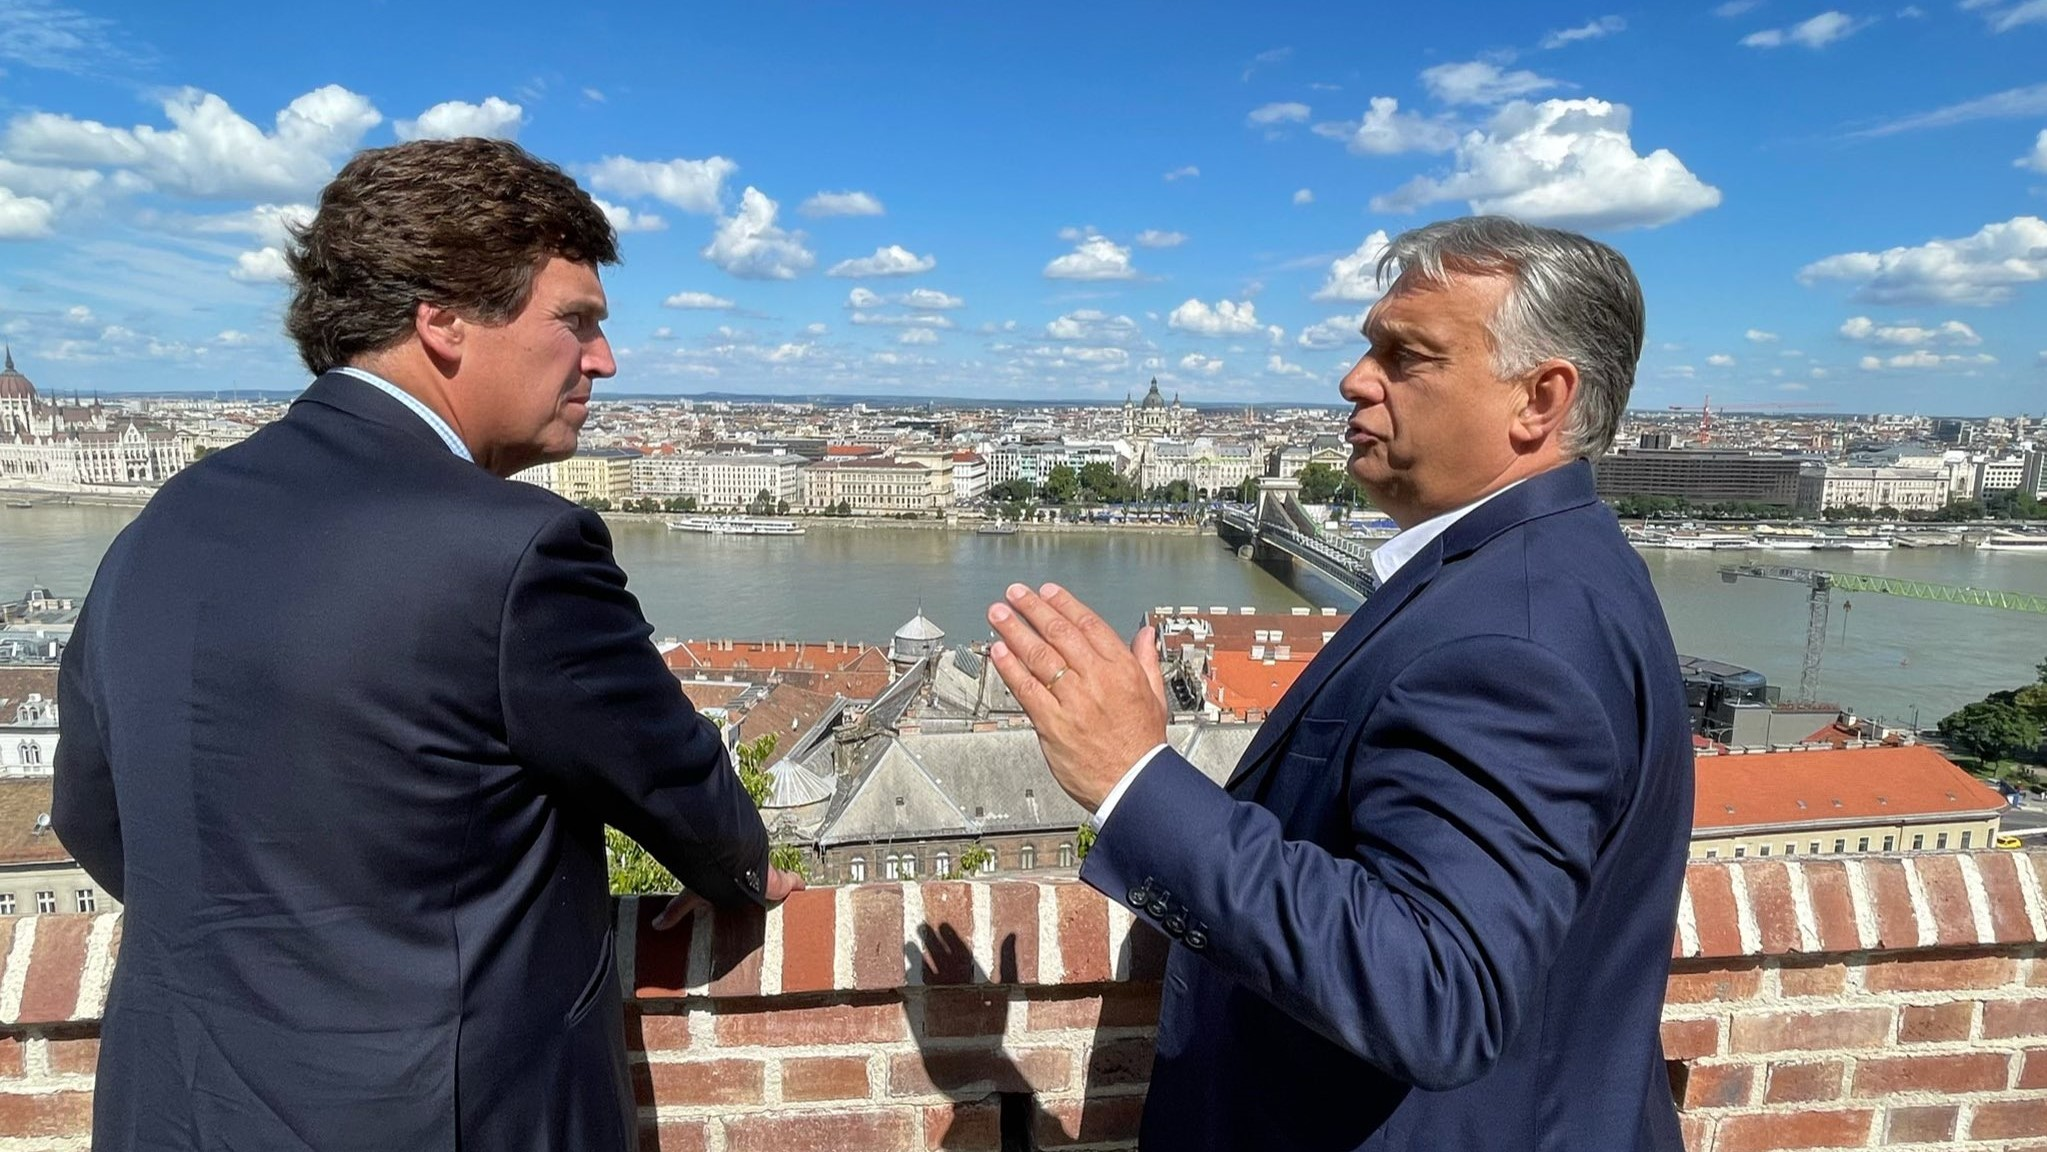 PM Orbán Meets Popular Right-wing Political Commentator and Host Tucker Carlson